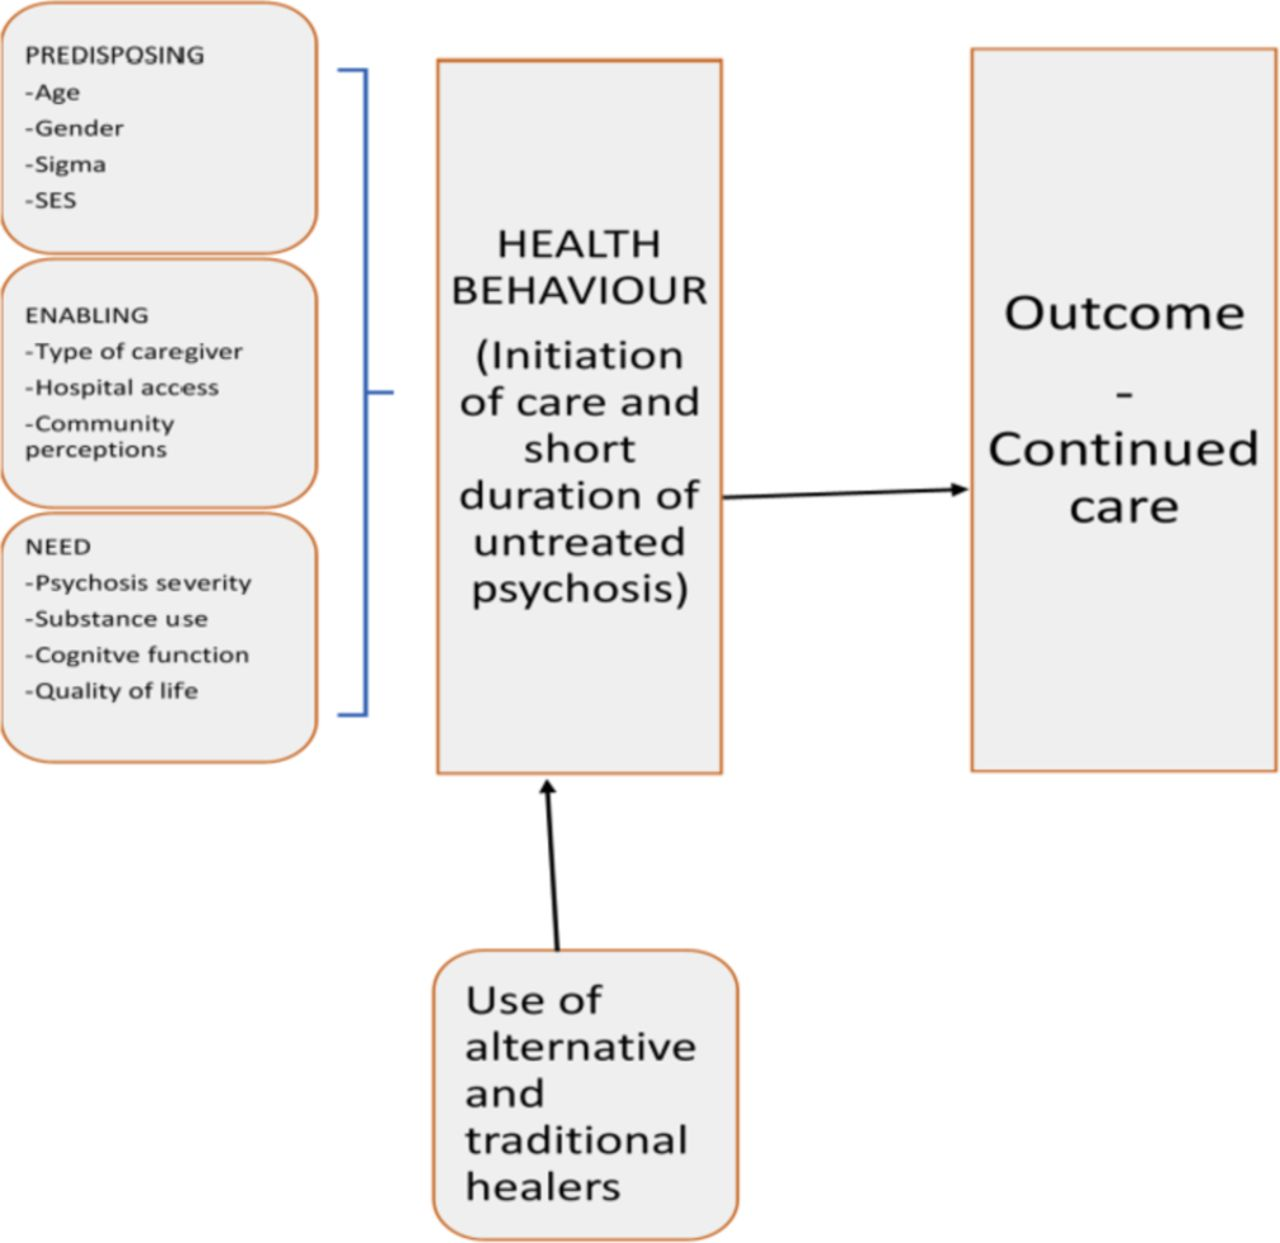 A cross-sectional mixed methods protocol to describe